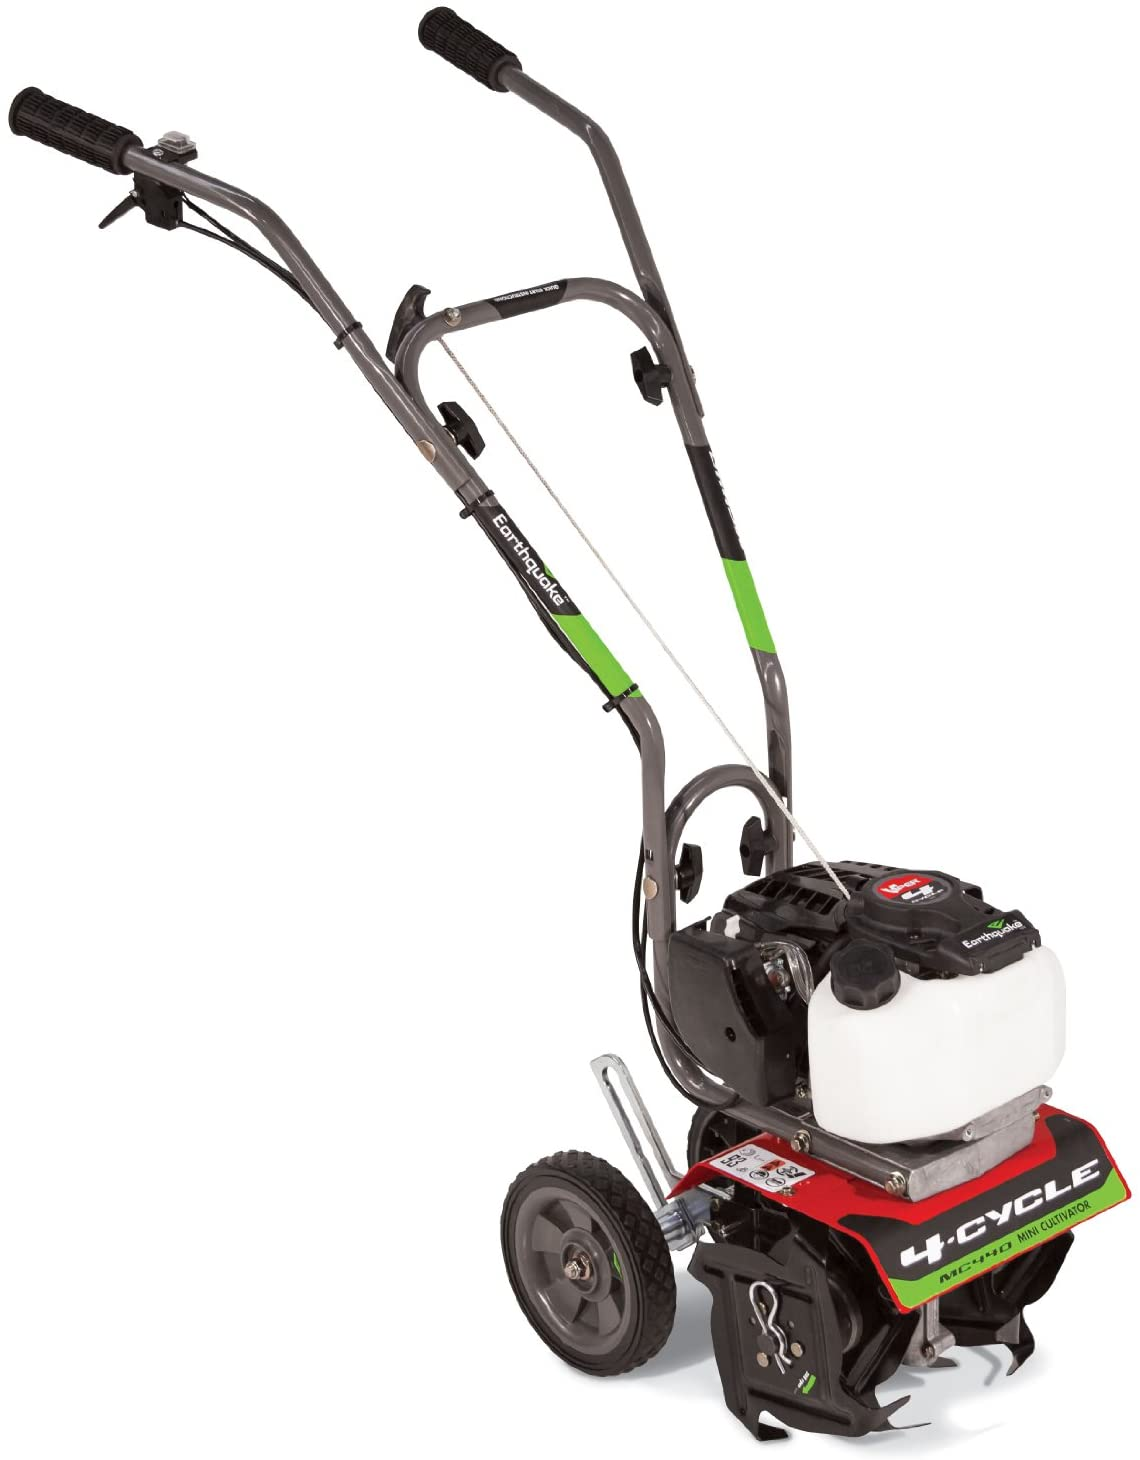 Earthquake 12802 MC440 Mini Cultivator with 40cc 4-Cycle Viper Engine